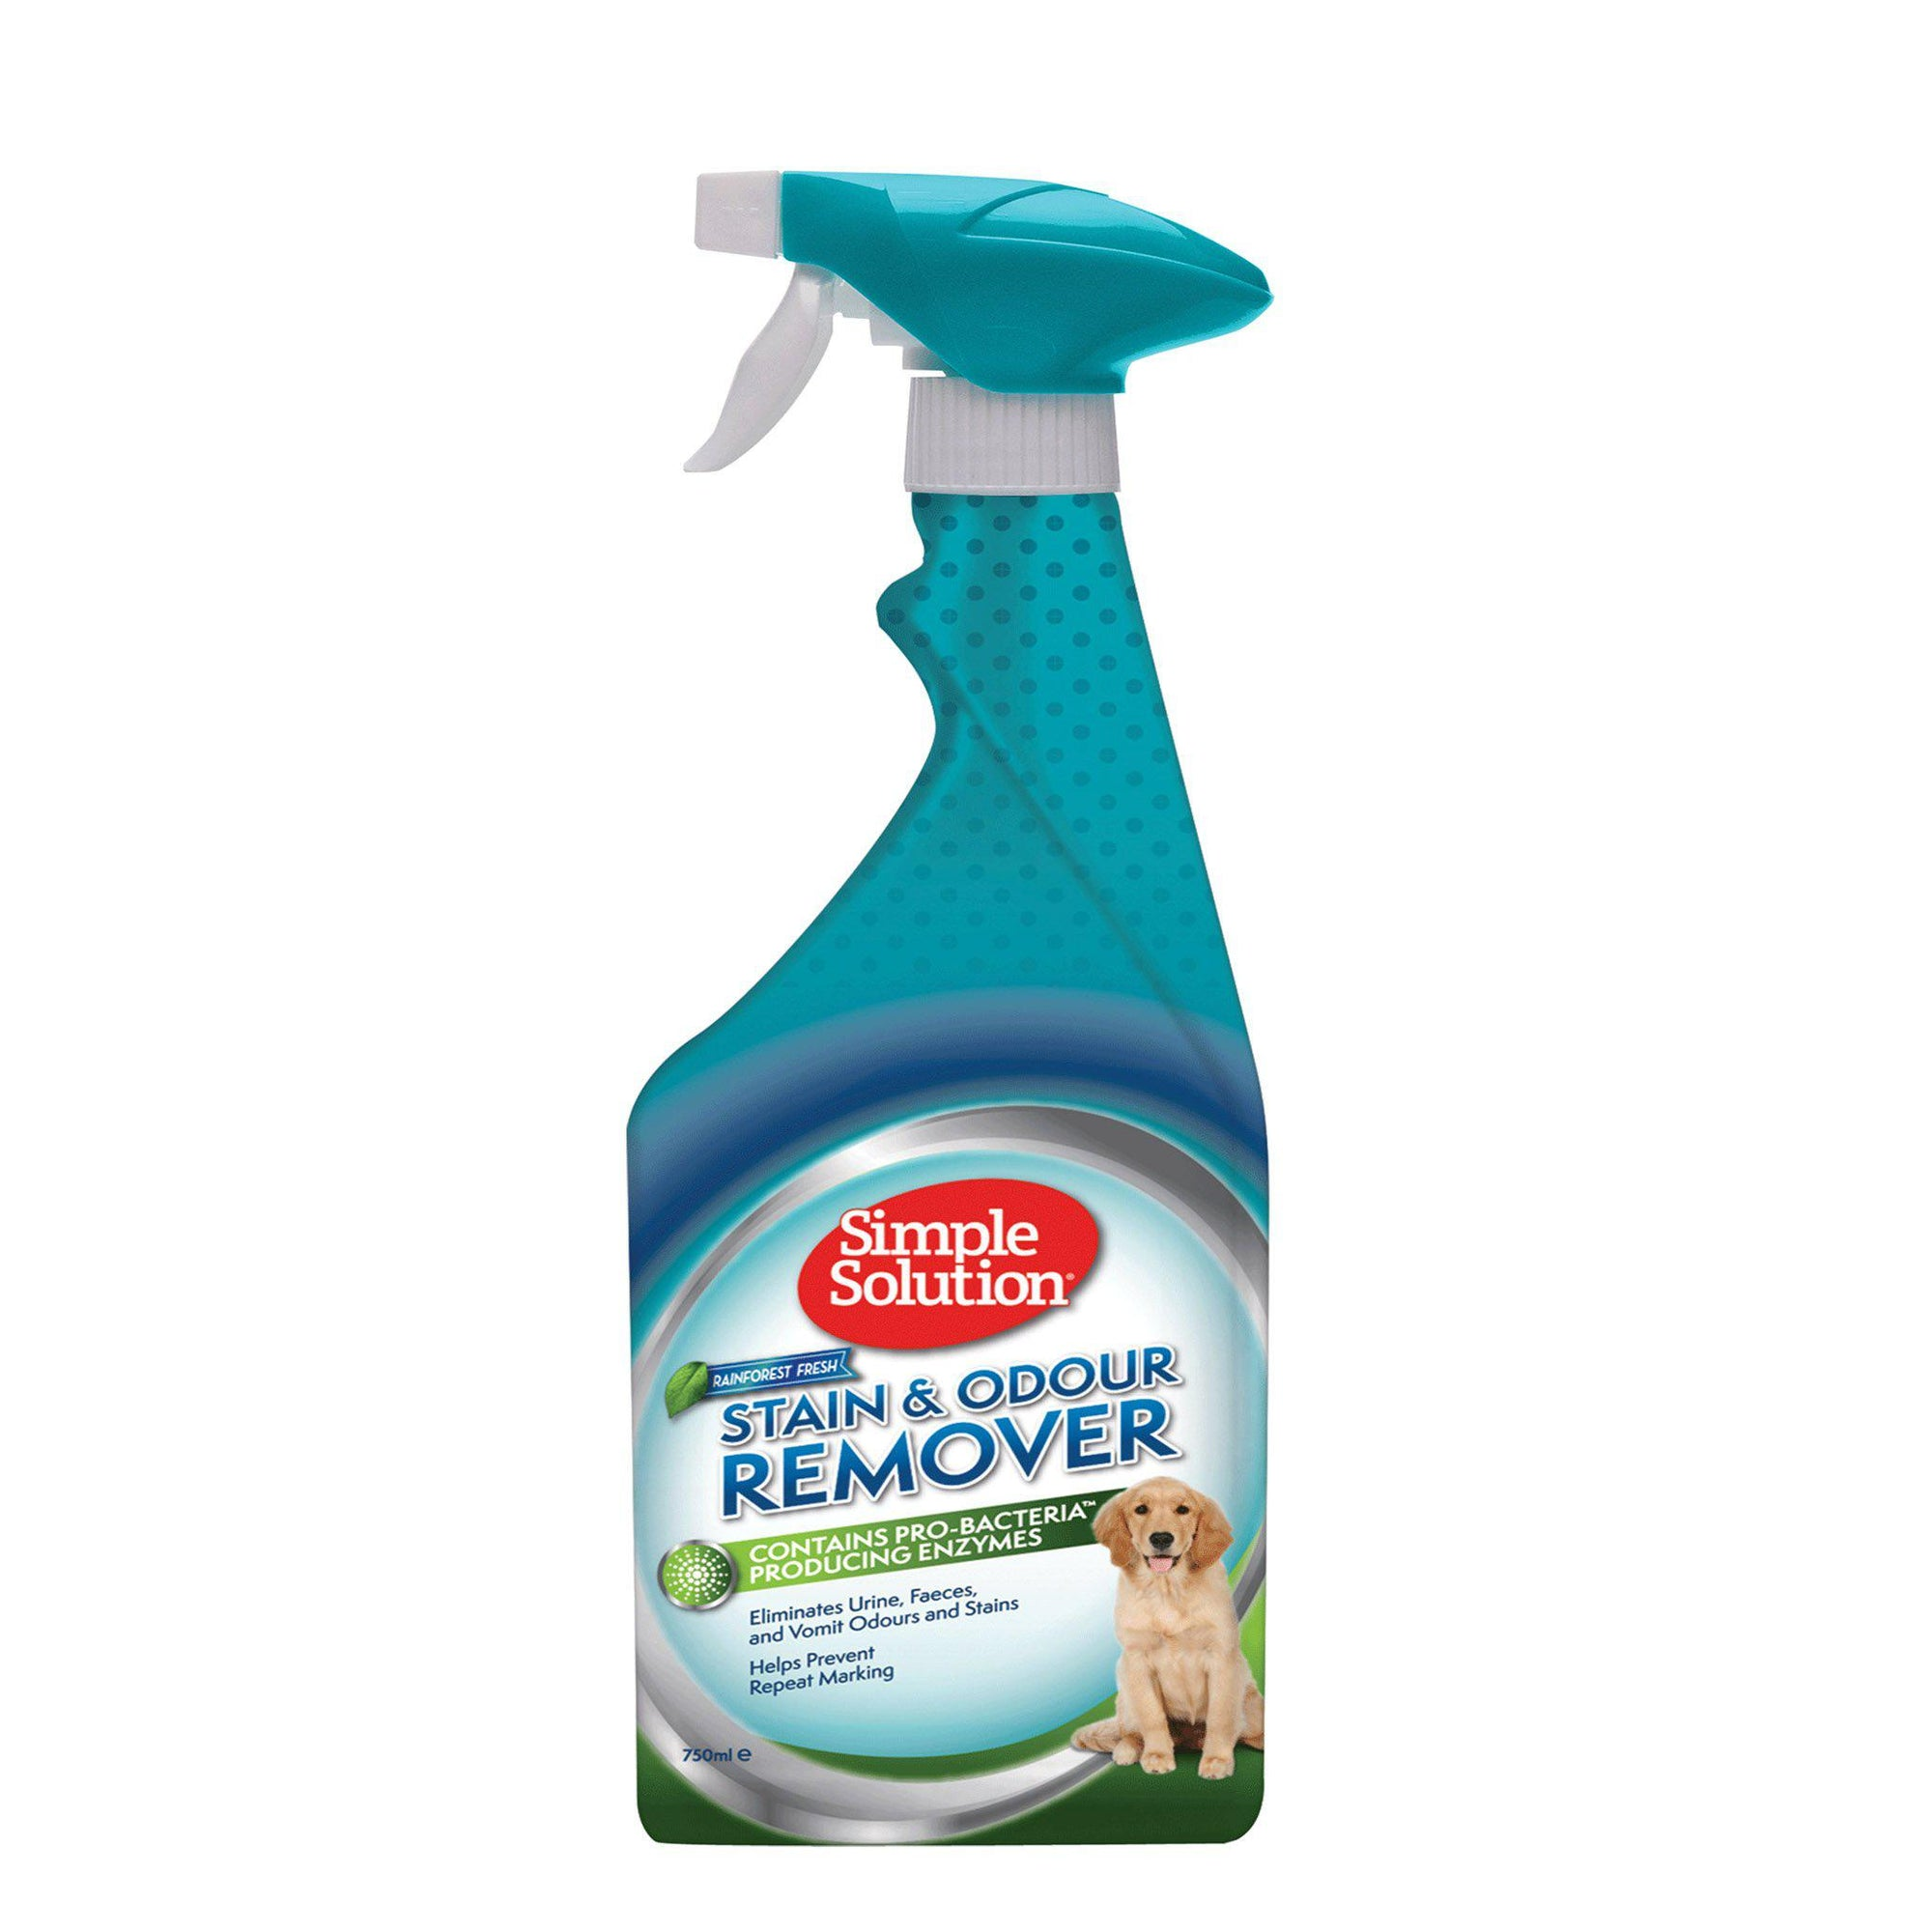 Simple Solution Dog Stain & Odour Remover 750ml - Rain Forest - ComfyPet Products